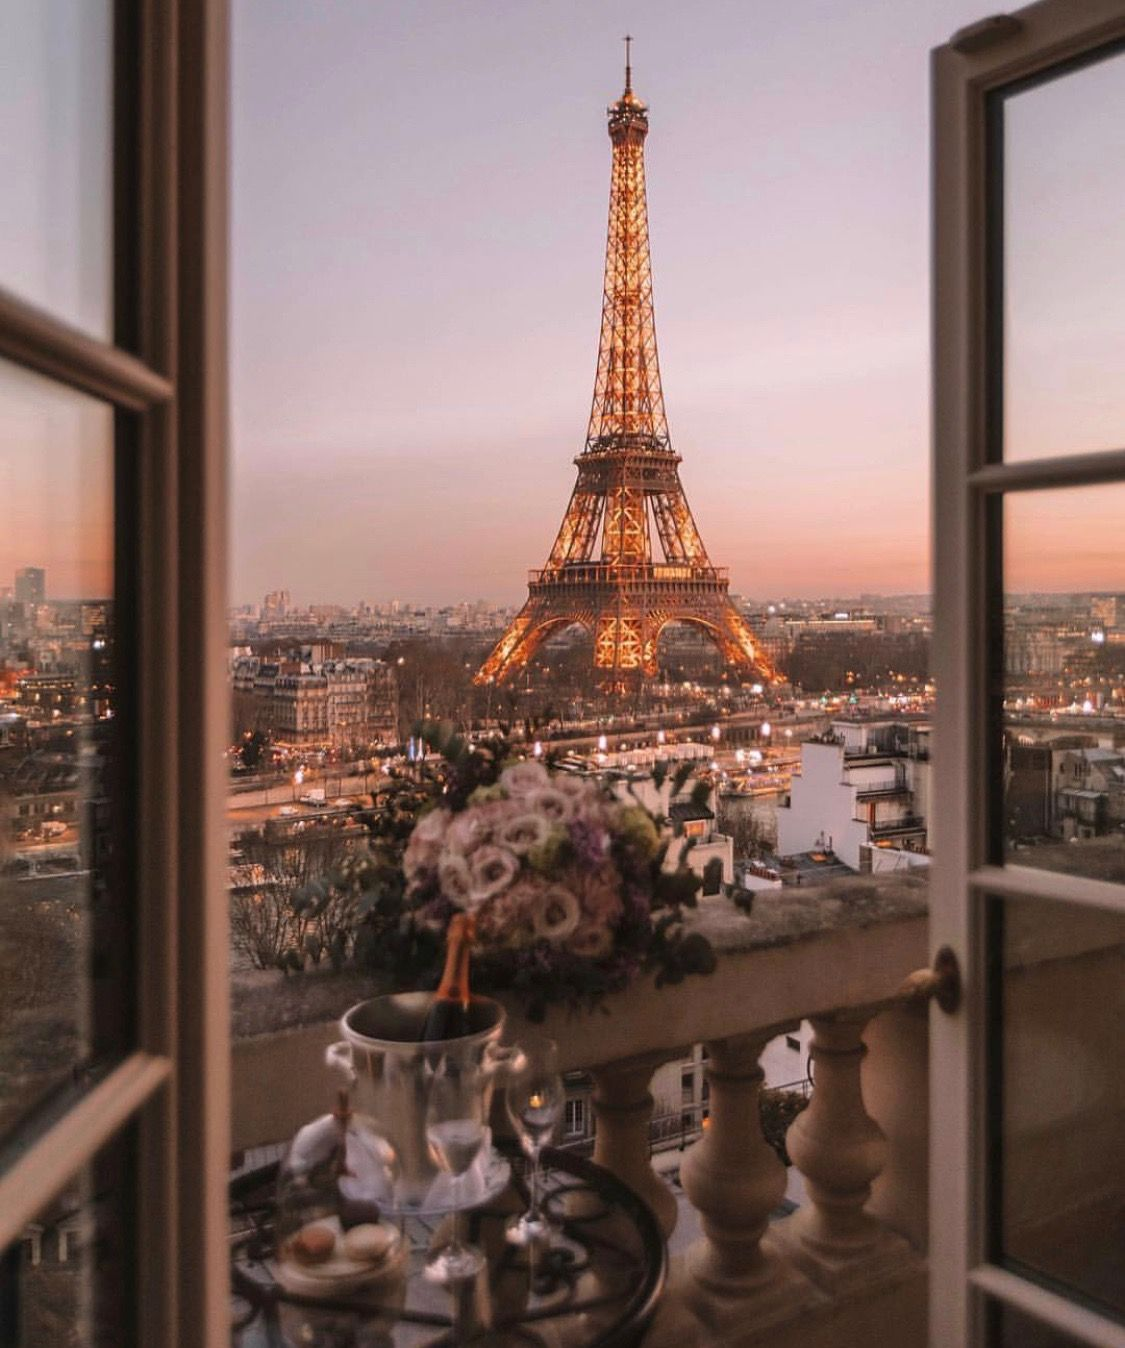 Image by Mariono Boutique on TRAVEL Paris wallpaper